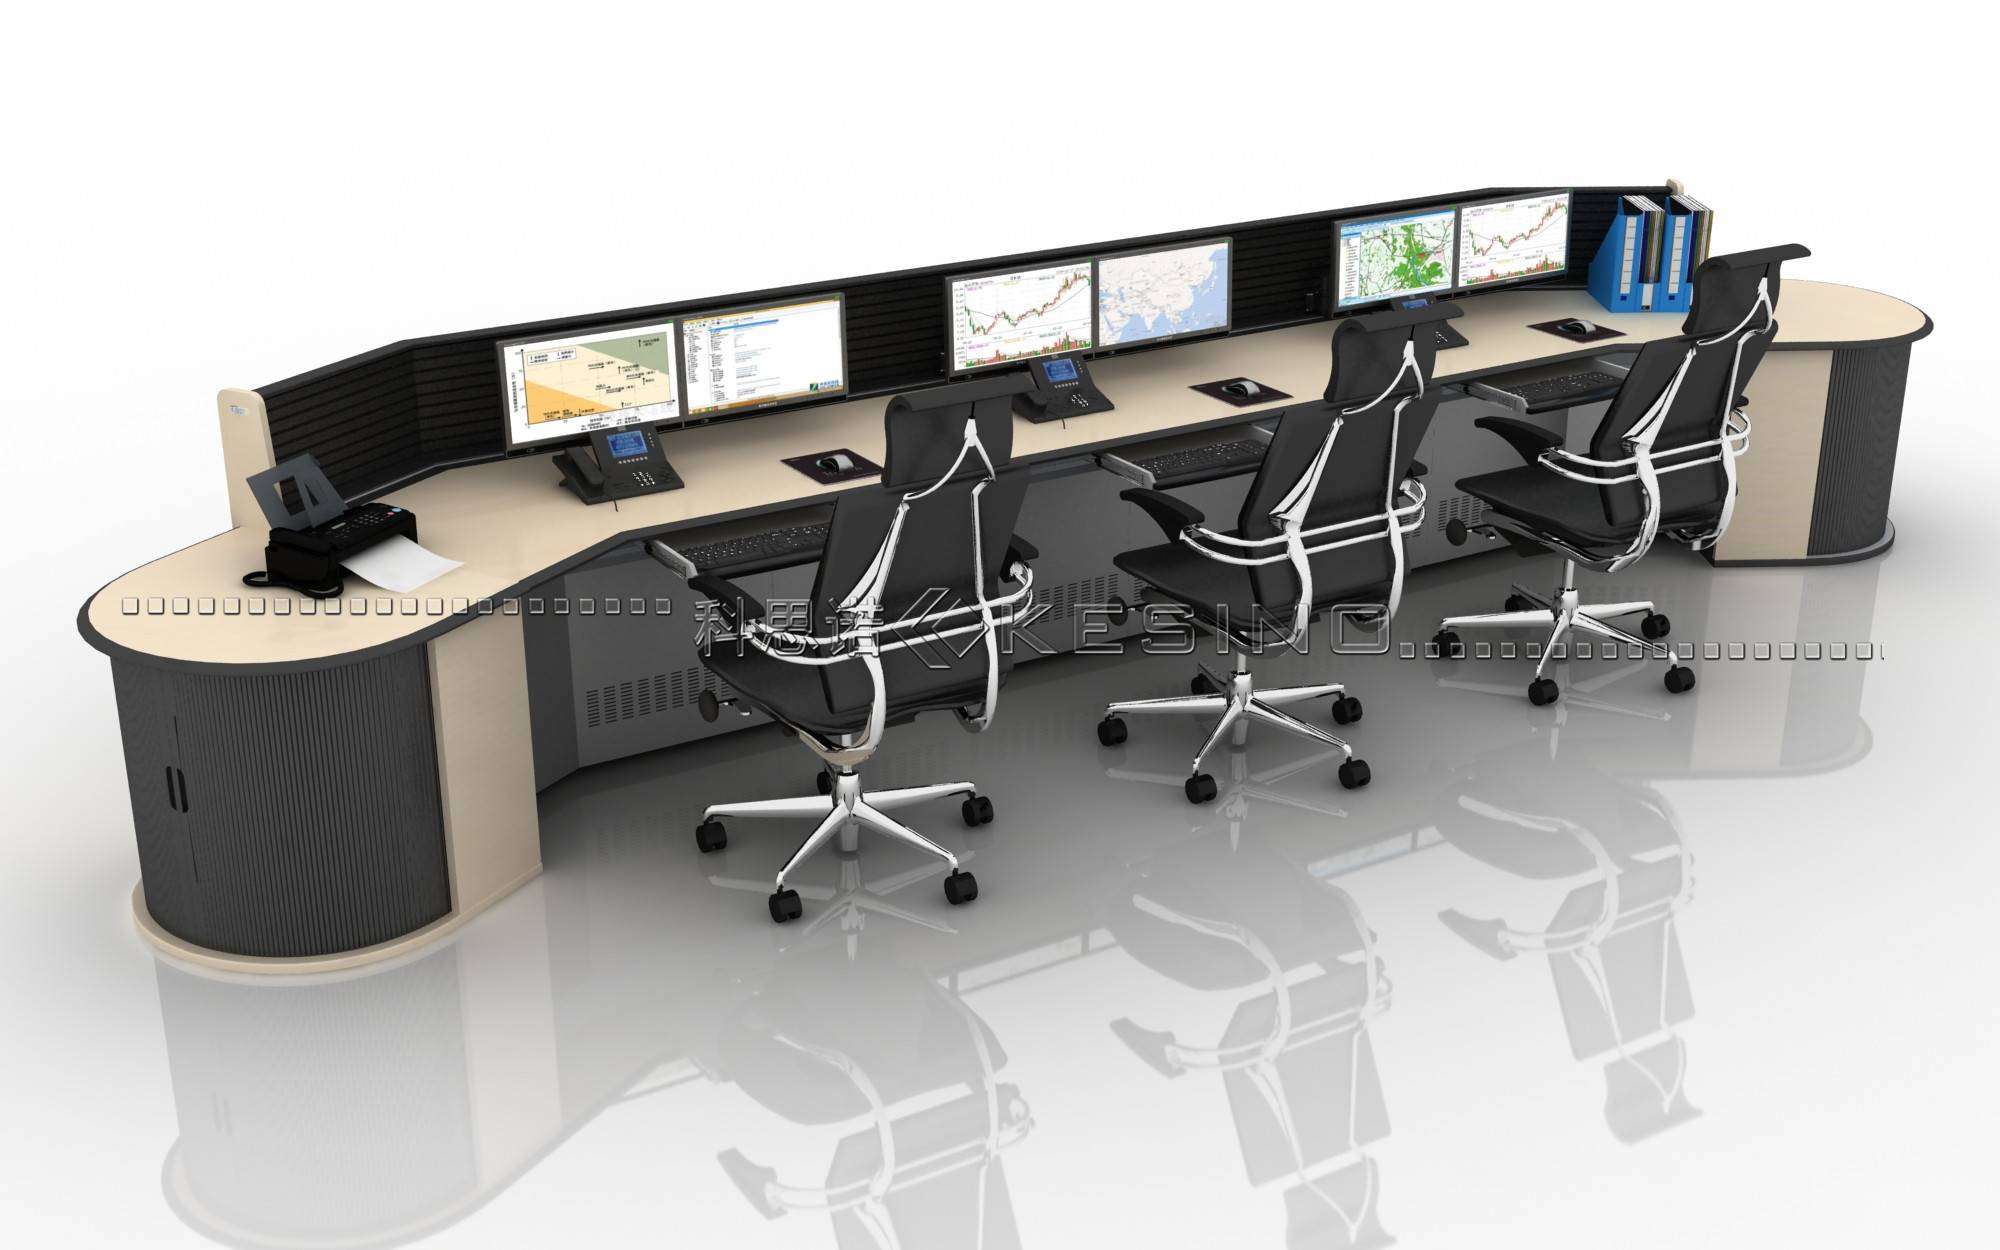 control room console for power dispatching,commercial  Furniture